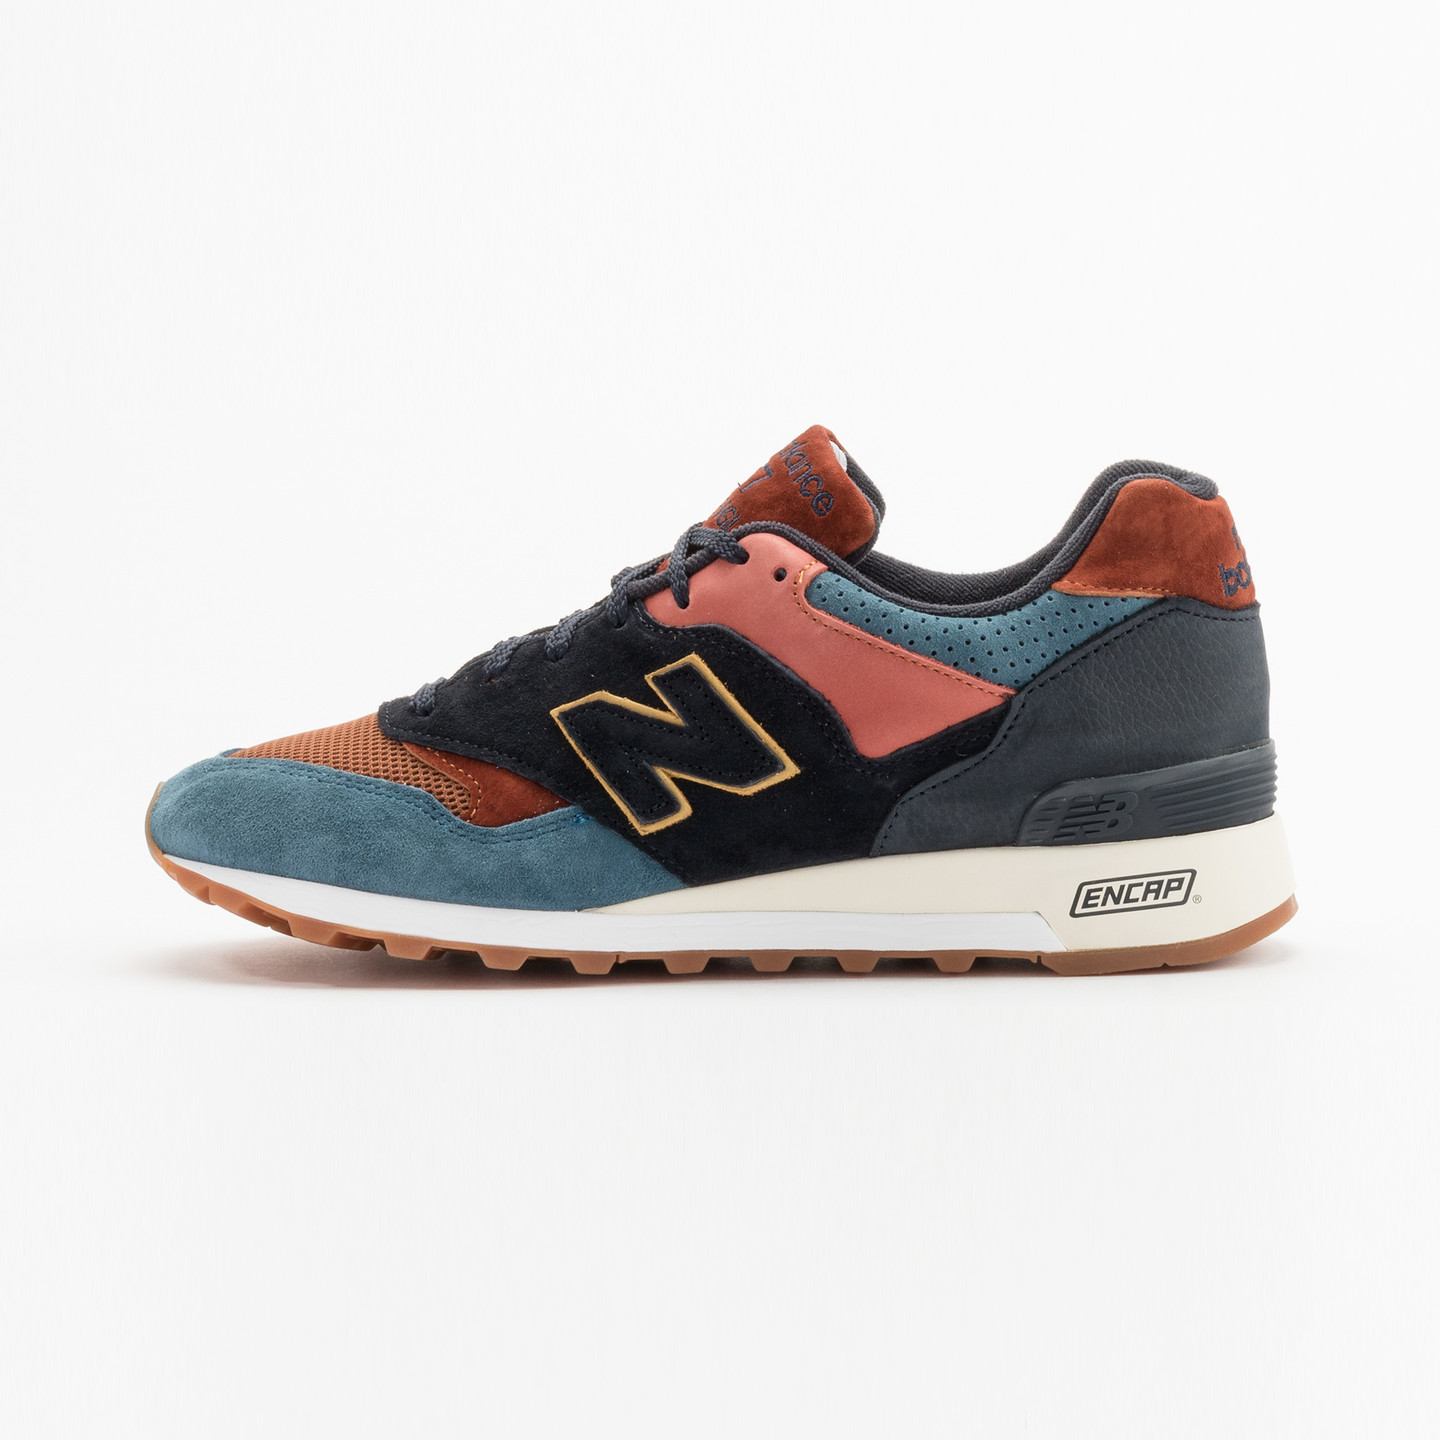 New Balance M577 YP Made in UK 'Yard Pack' Multicolor M577YP-45